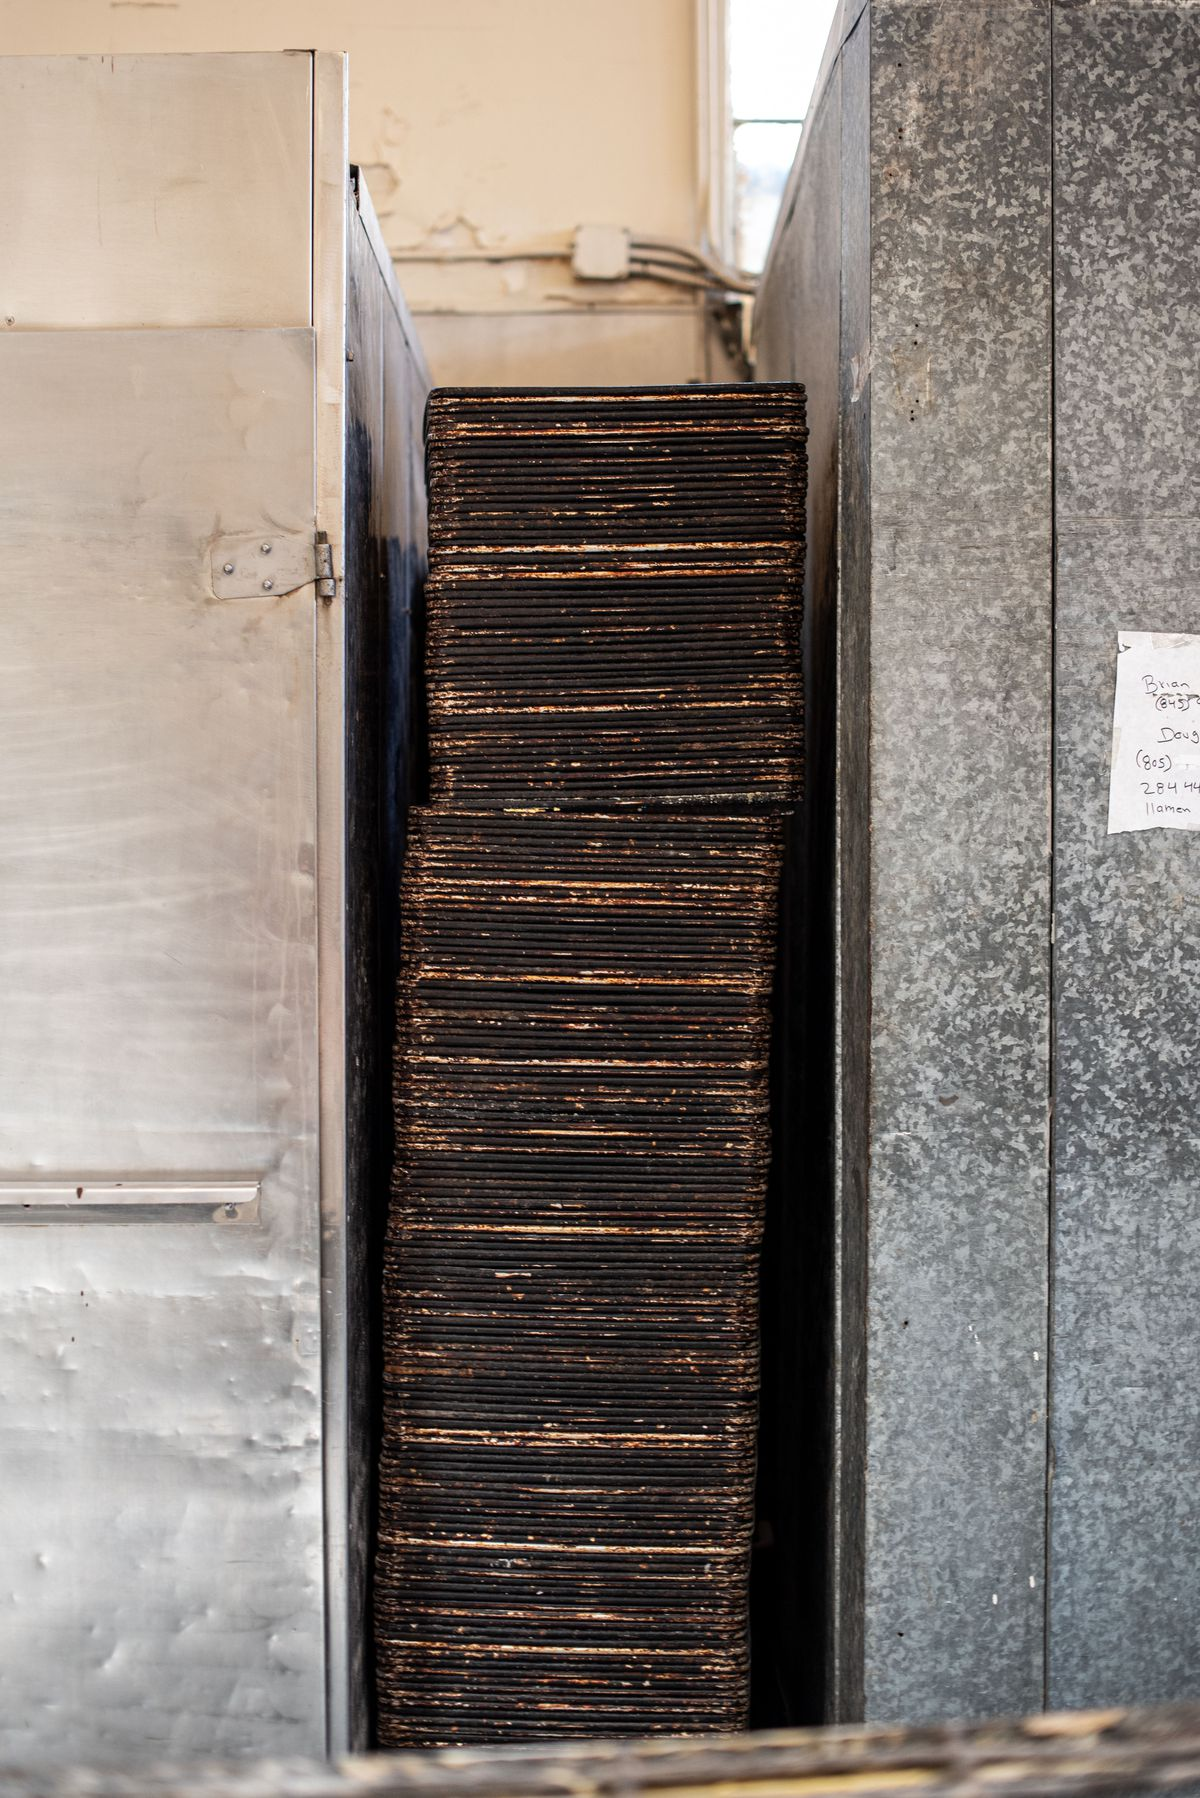 A pile of aging pans between ovens inside of an old bakery.